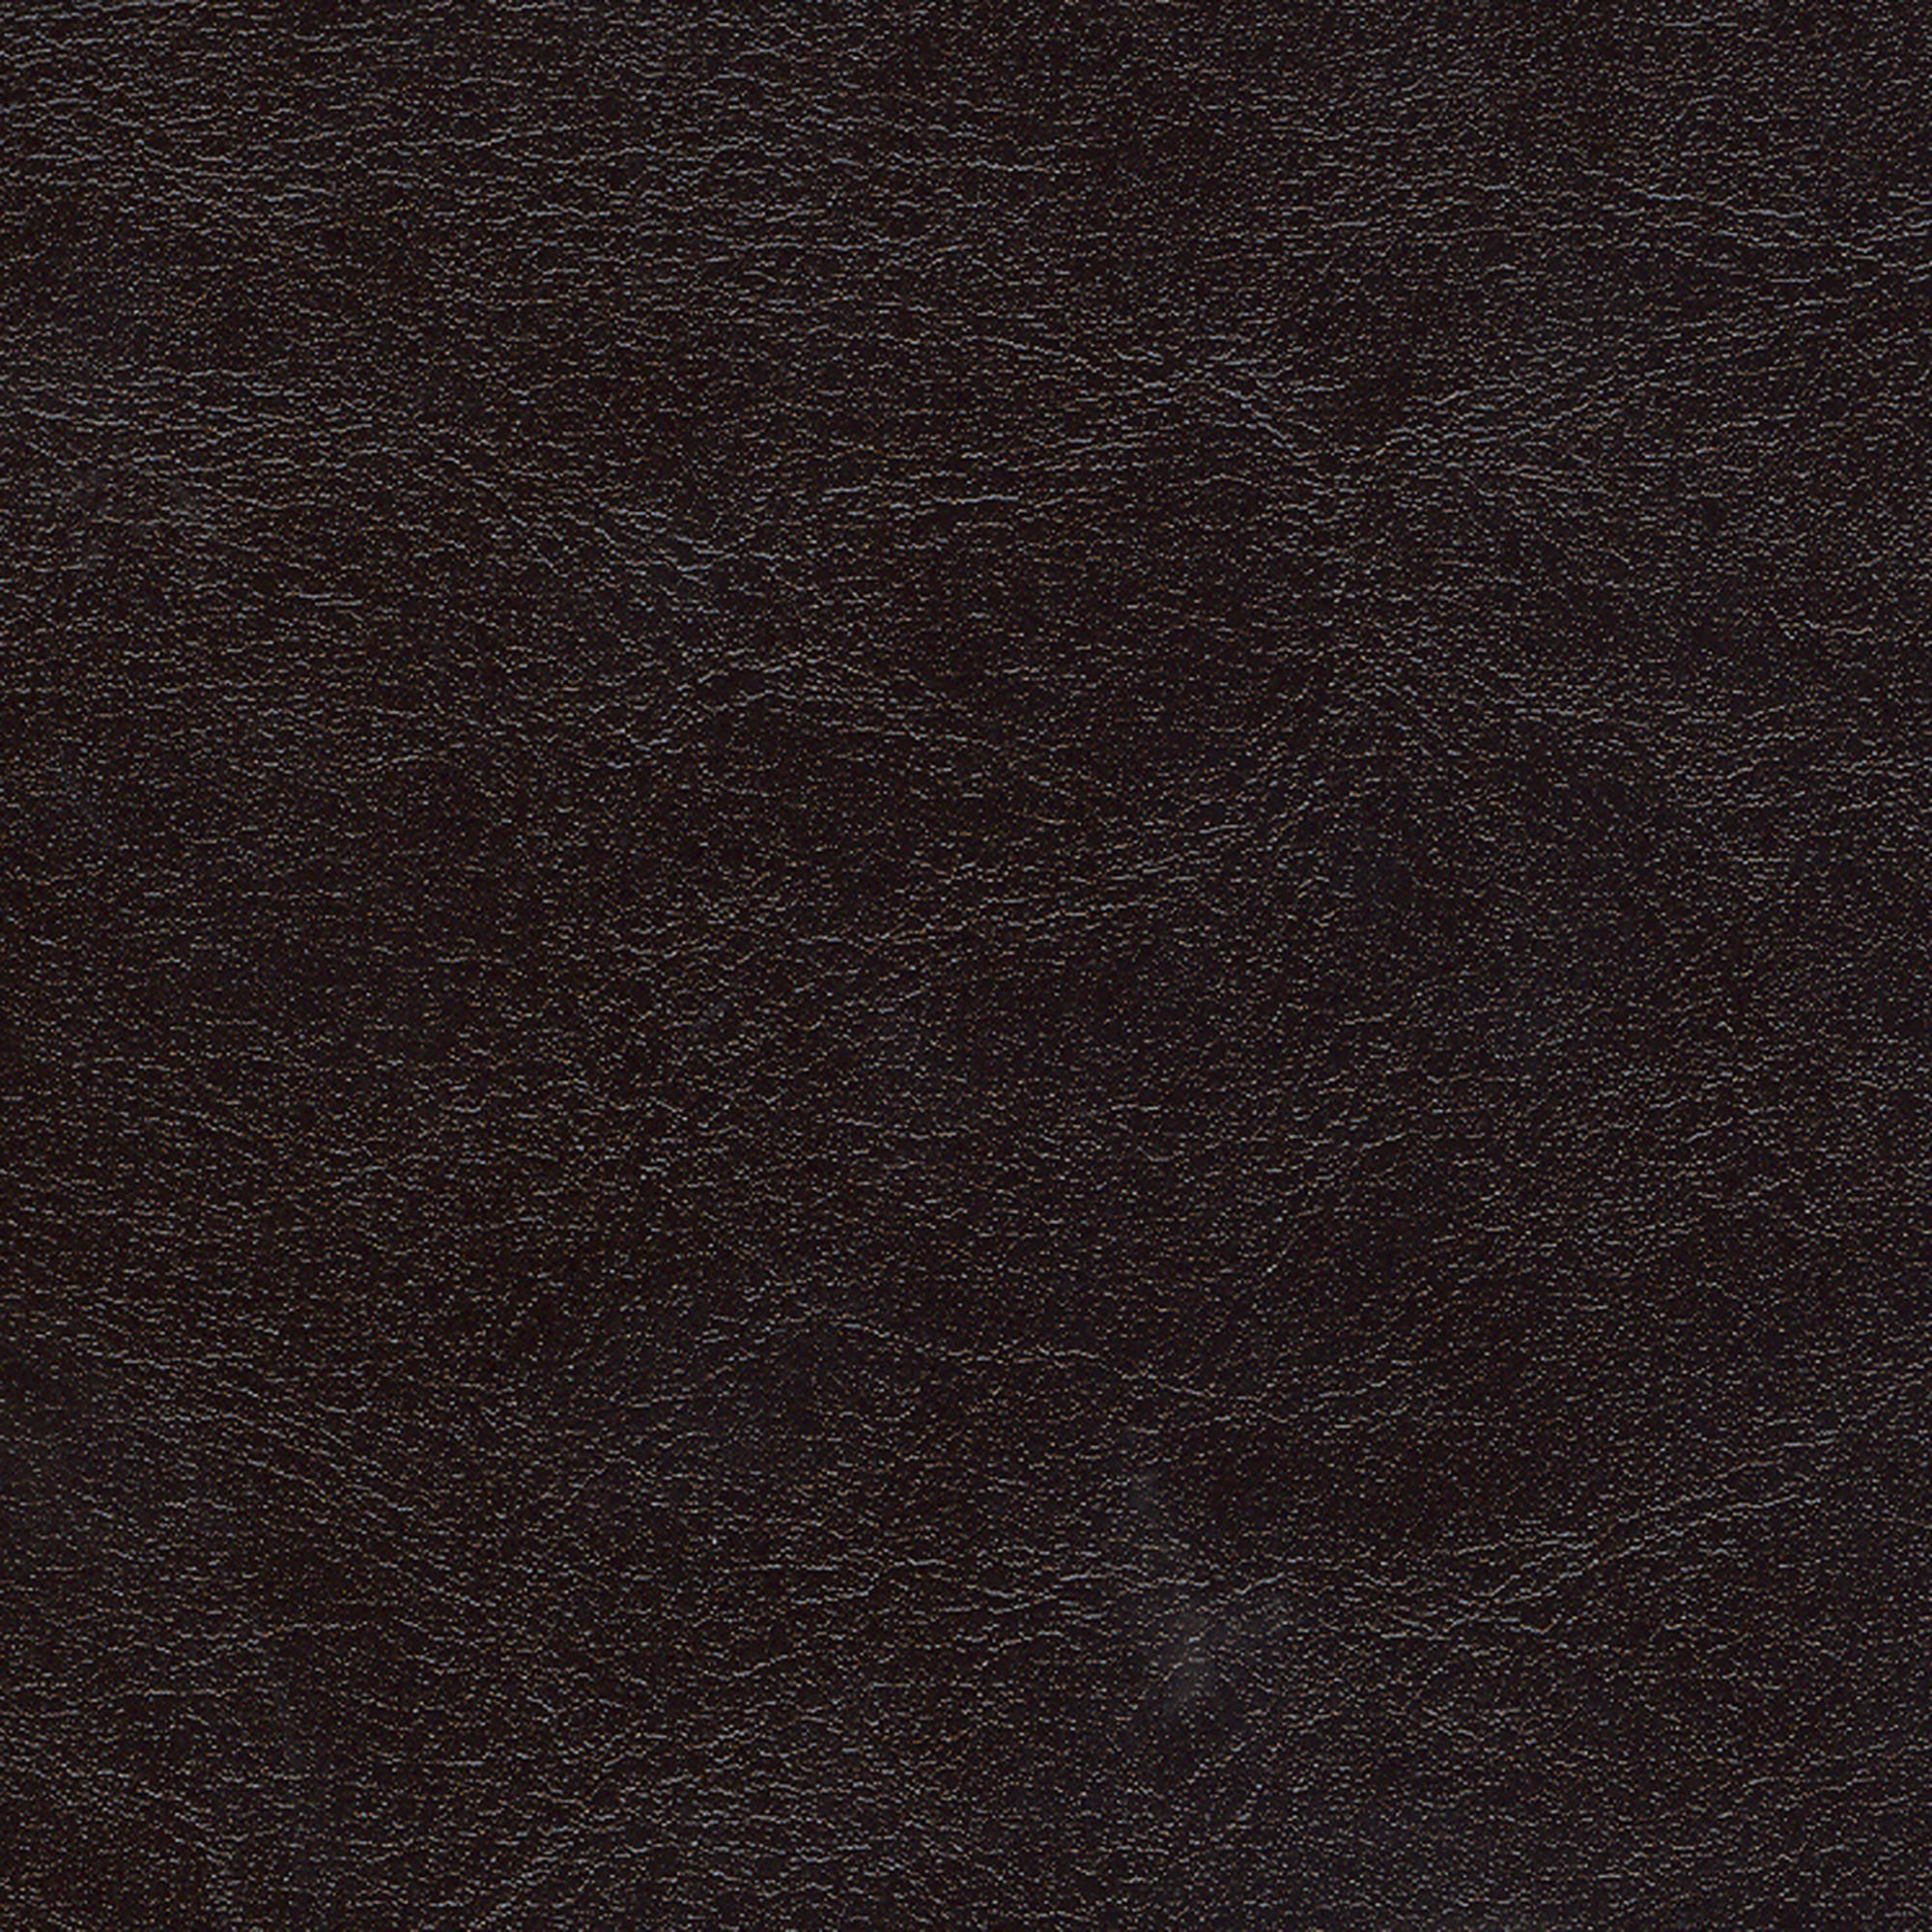 SHASON TEXTILE FAUX LEATHER UPHOLSTERY-HOME DECOR SOLID FABRIC, BROWN, Available In Multiple Colors